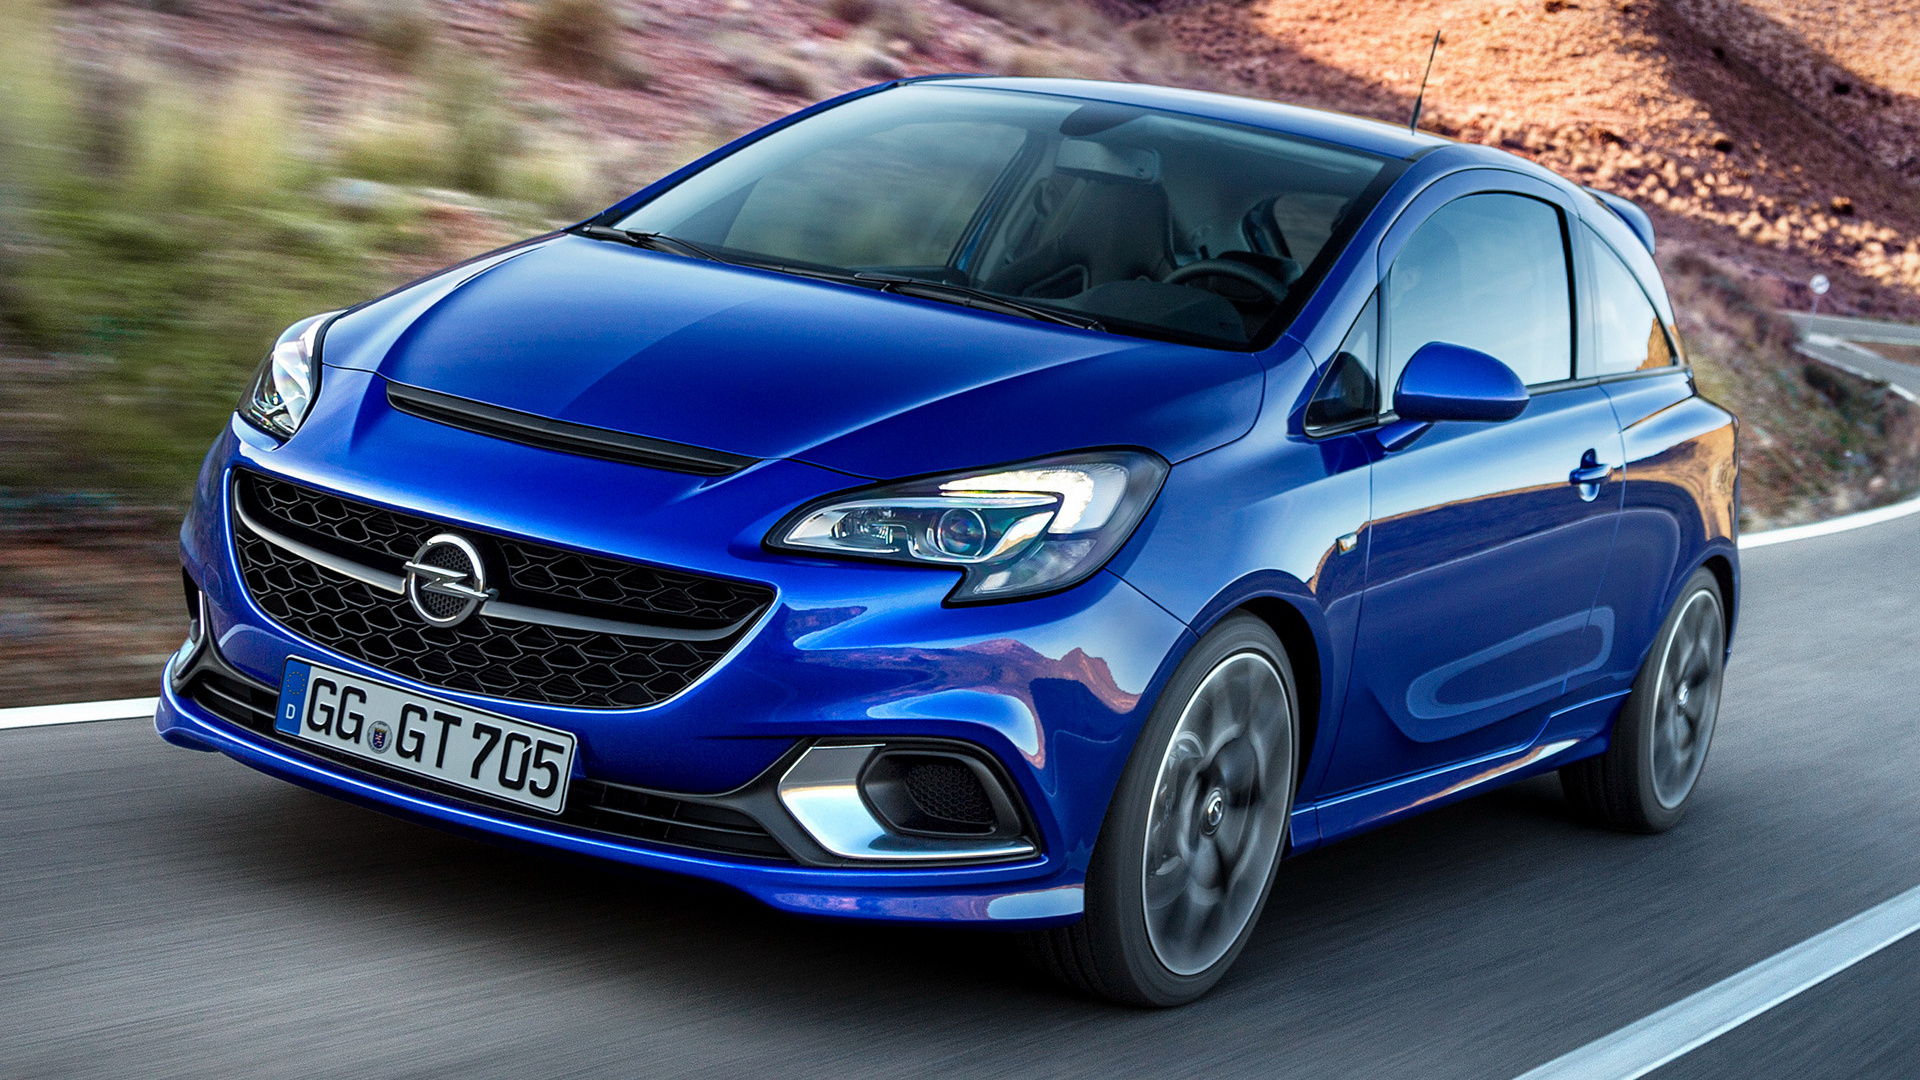 Opel Corsa Wallpapers HD Photos, Wallpapers and other Image